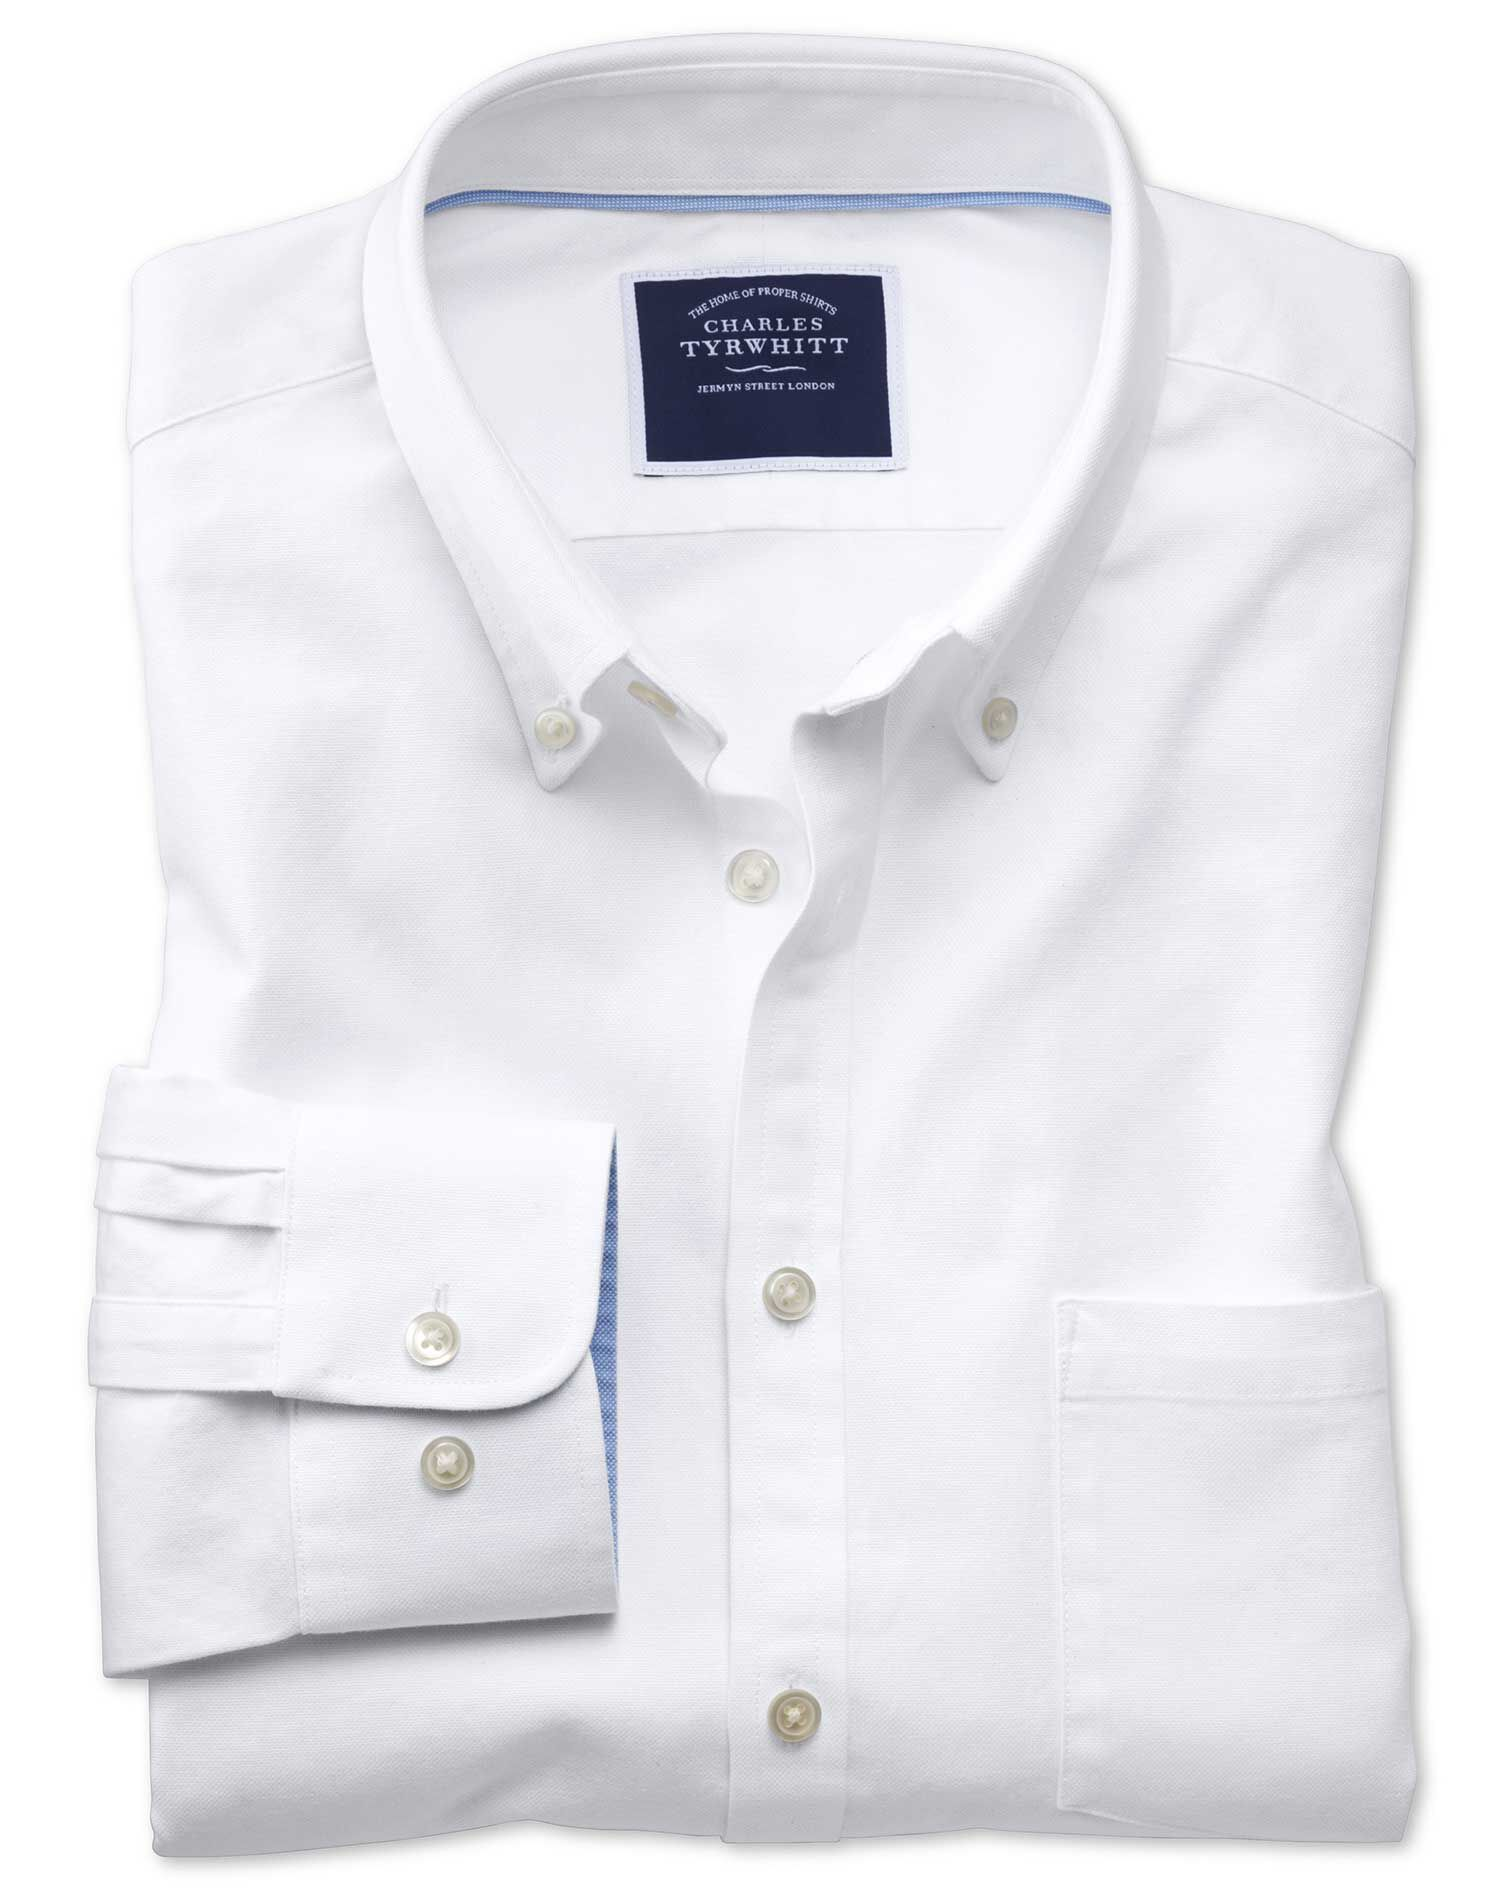 Classic Fit Button-Down Washed Oxford Plain White Cotton Shirt Single Cuff Size XXXL by Charles Tyrw